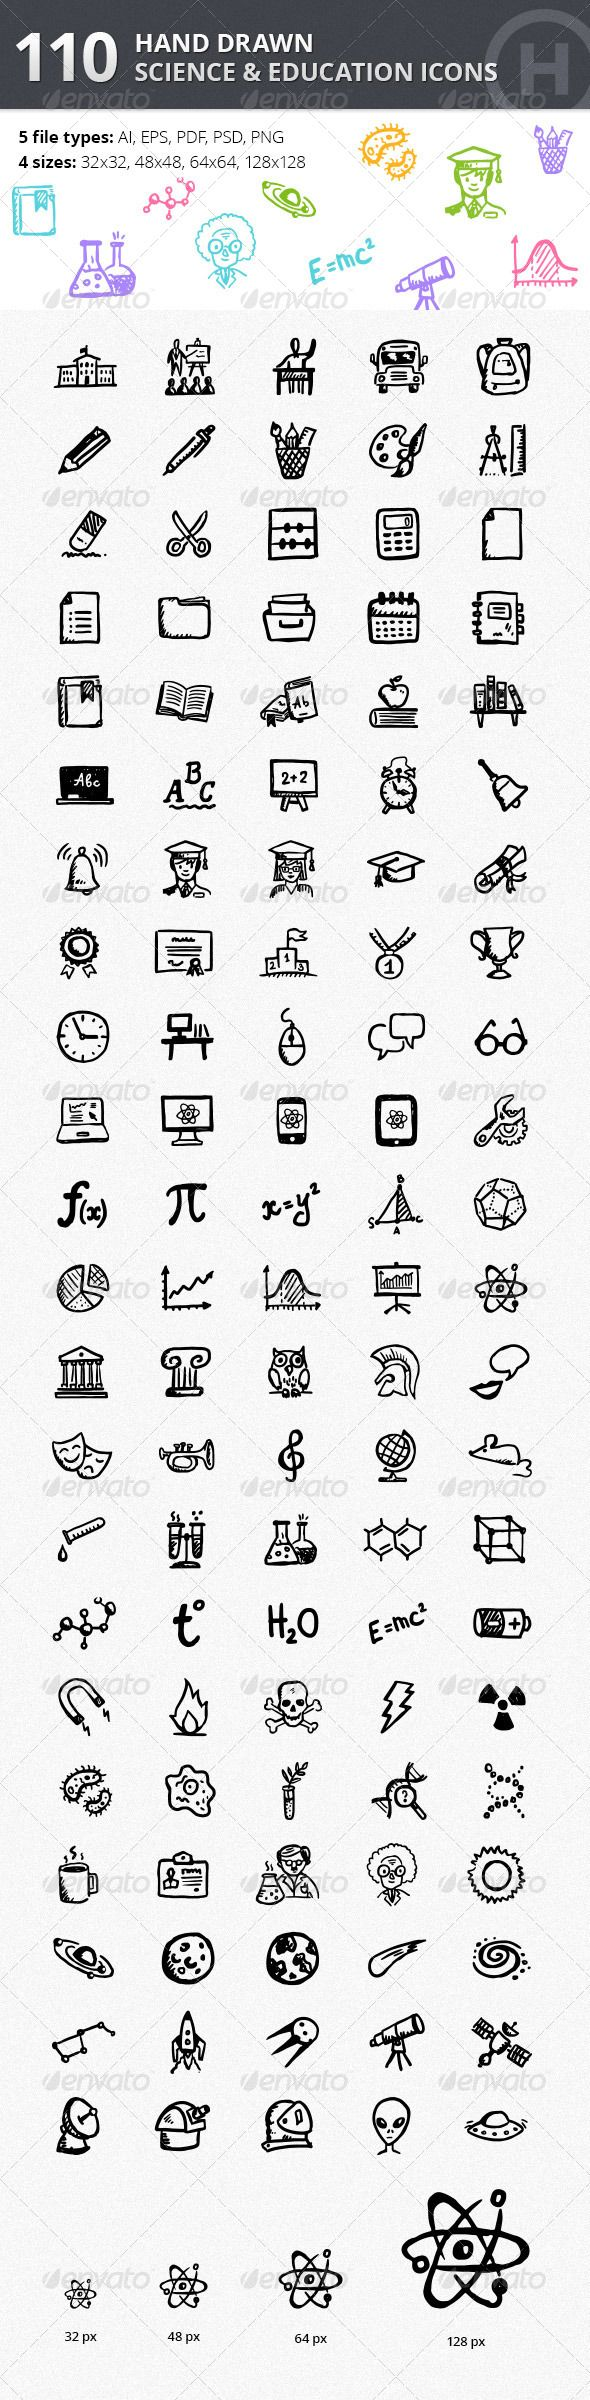 110 Hand-drawn Science & Education Icons Design Template  - Technology Icons Design Template PSD, Vector EPS, AI Illustrator. Download here: https://graphicriver.net/item/110-handdrawn-science-education-icons/5089439?ref=yinkira